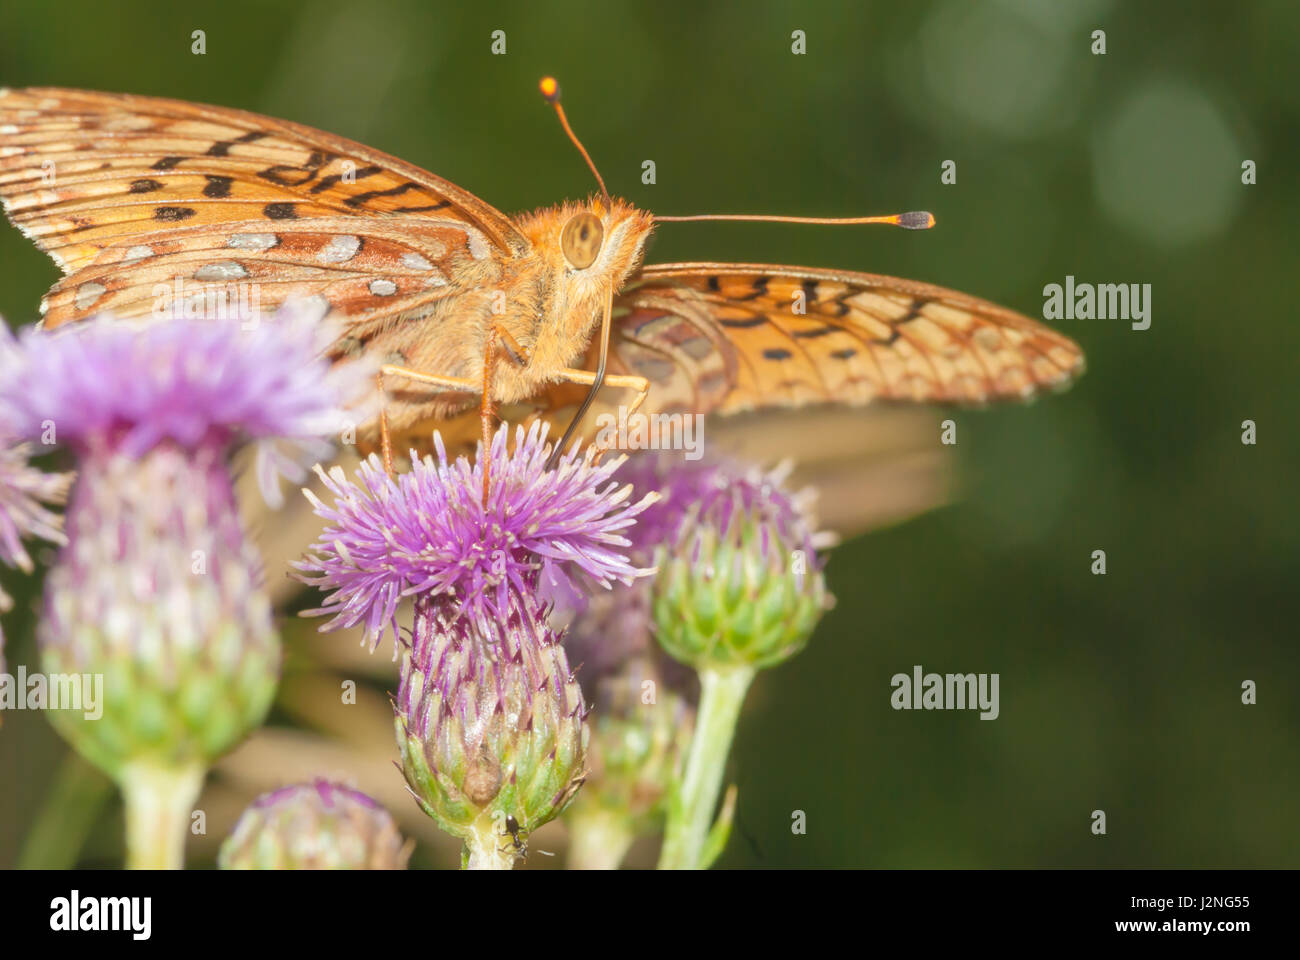 A fritillary butterfly nectaring from Canada thistle flowers, Cirsium arvense. - Stock Image